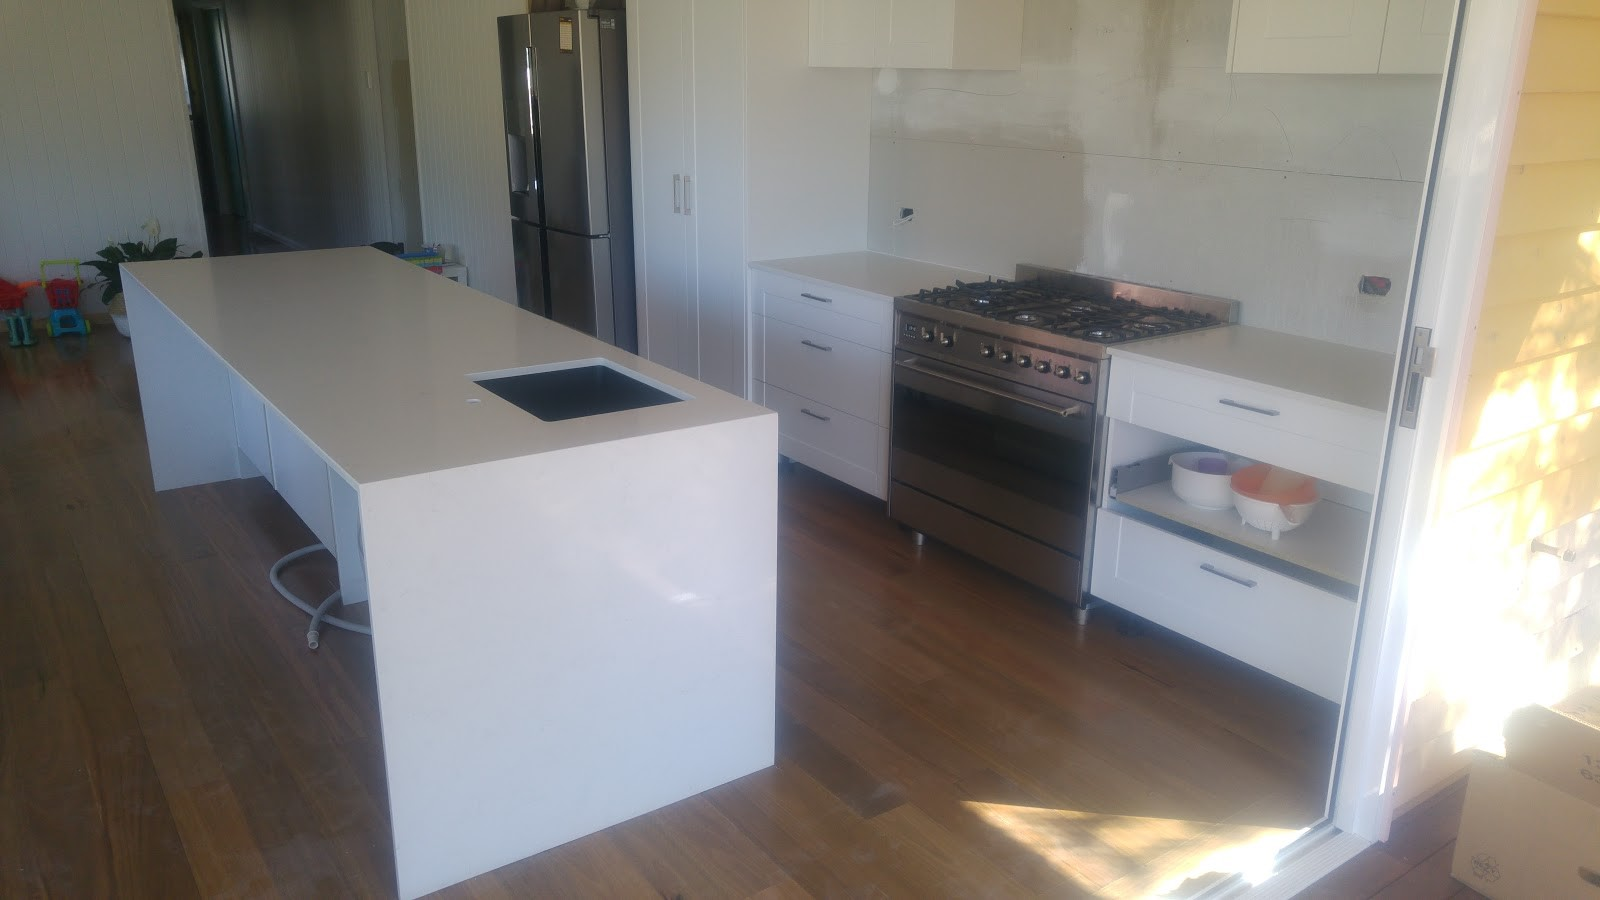 Photo of a fabulous new kitchen